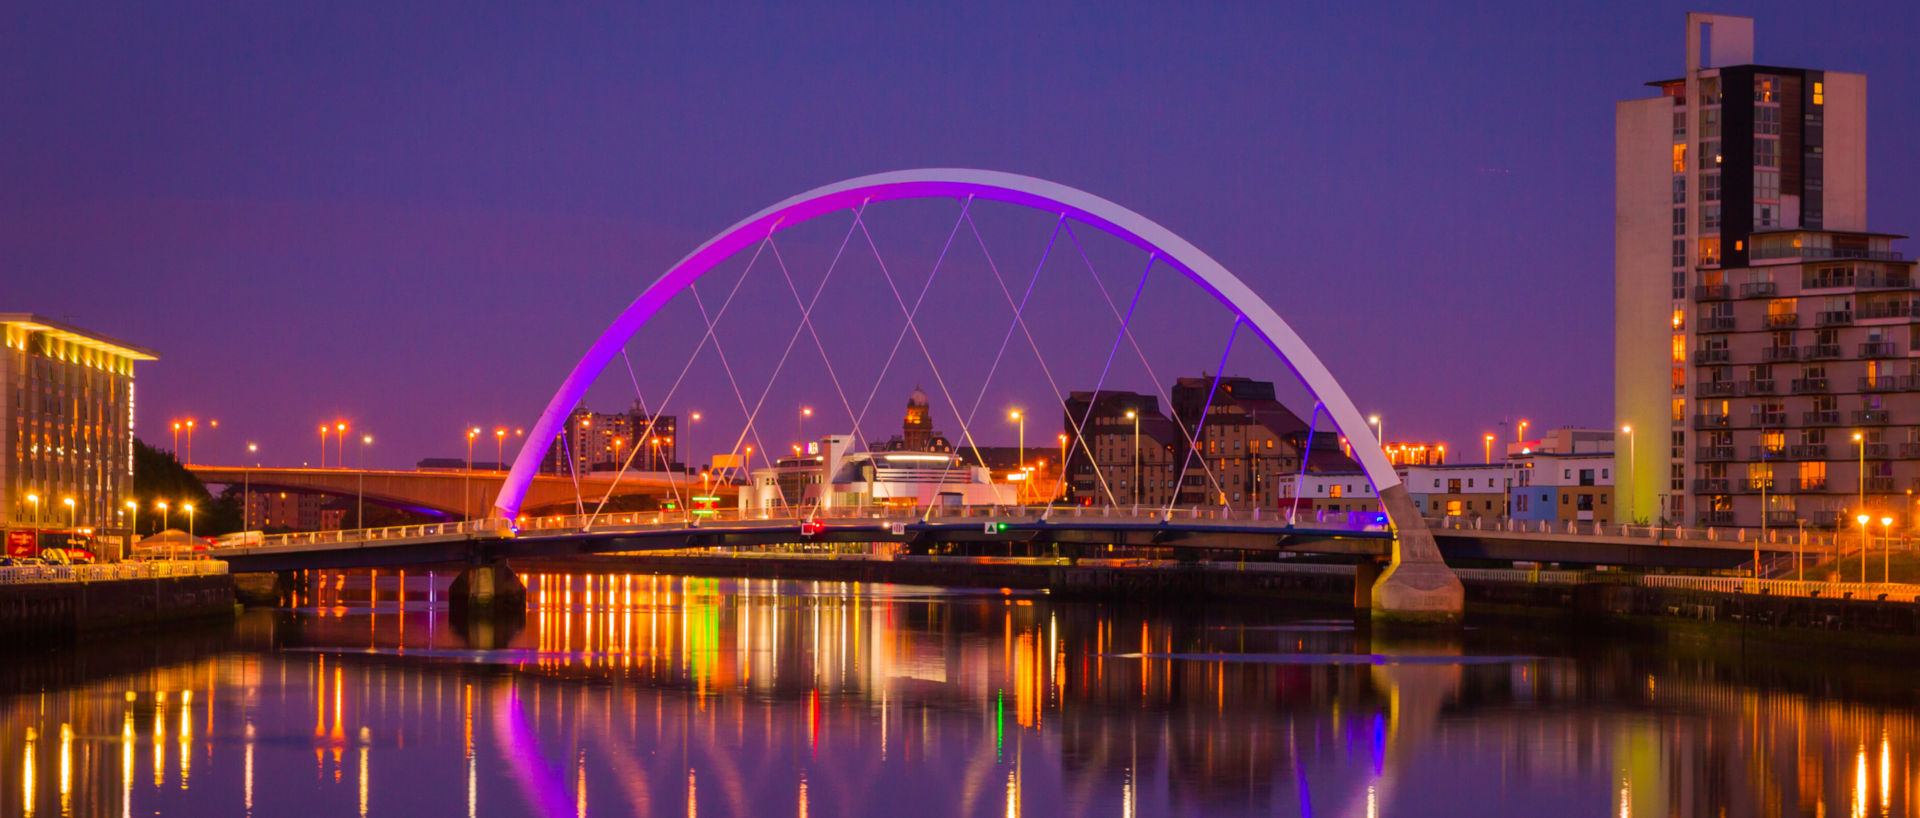 Clyde Bridge Glasgow at night time